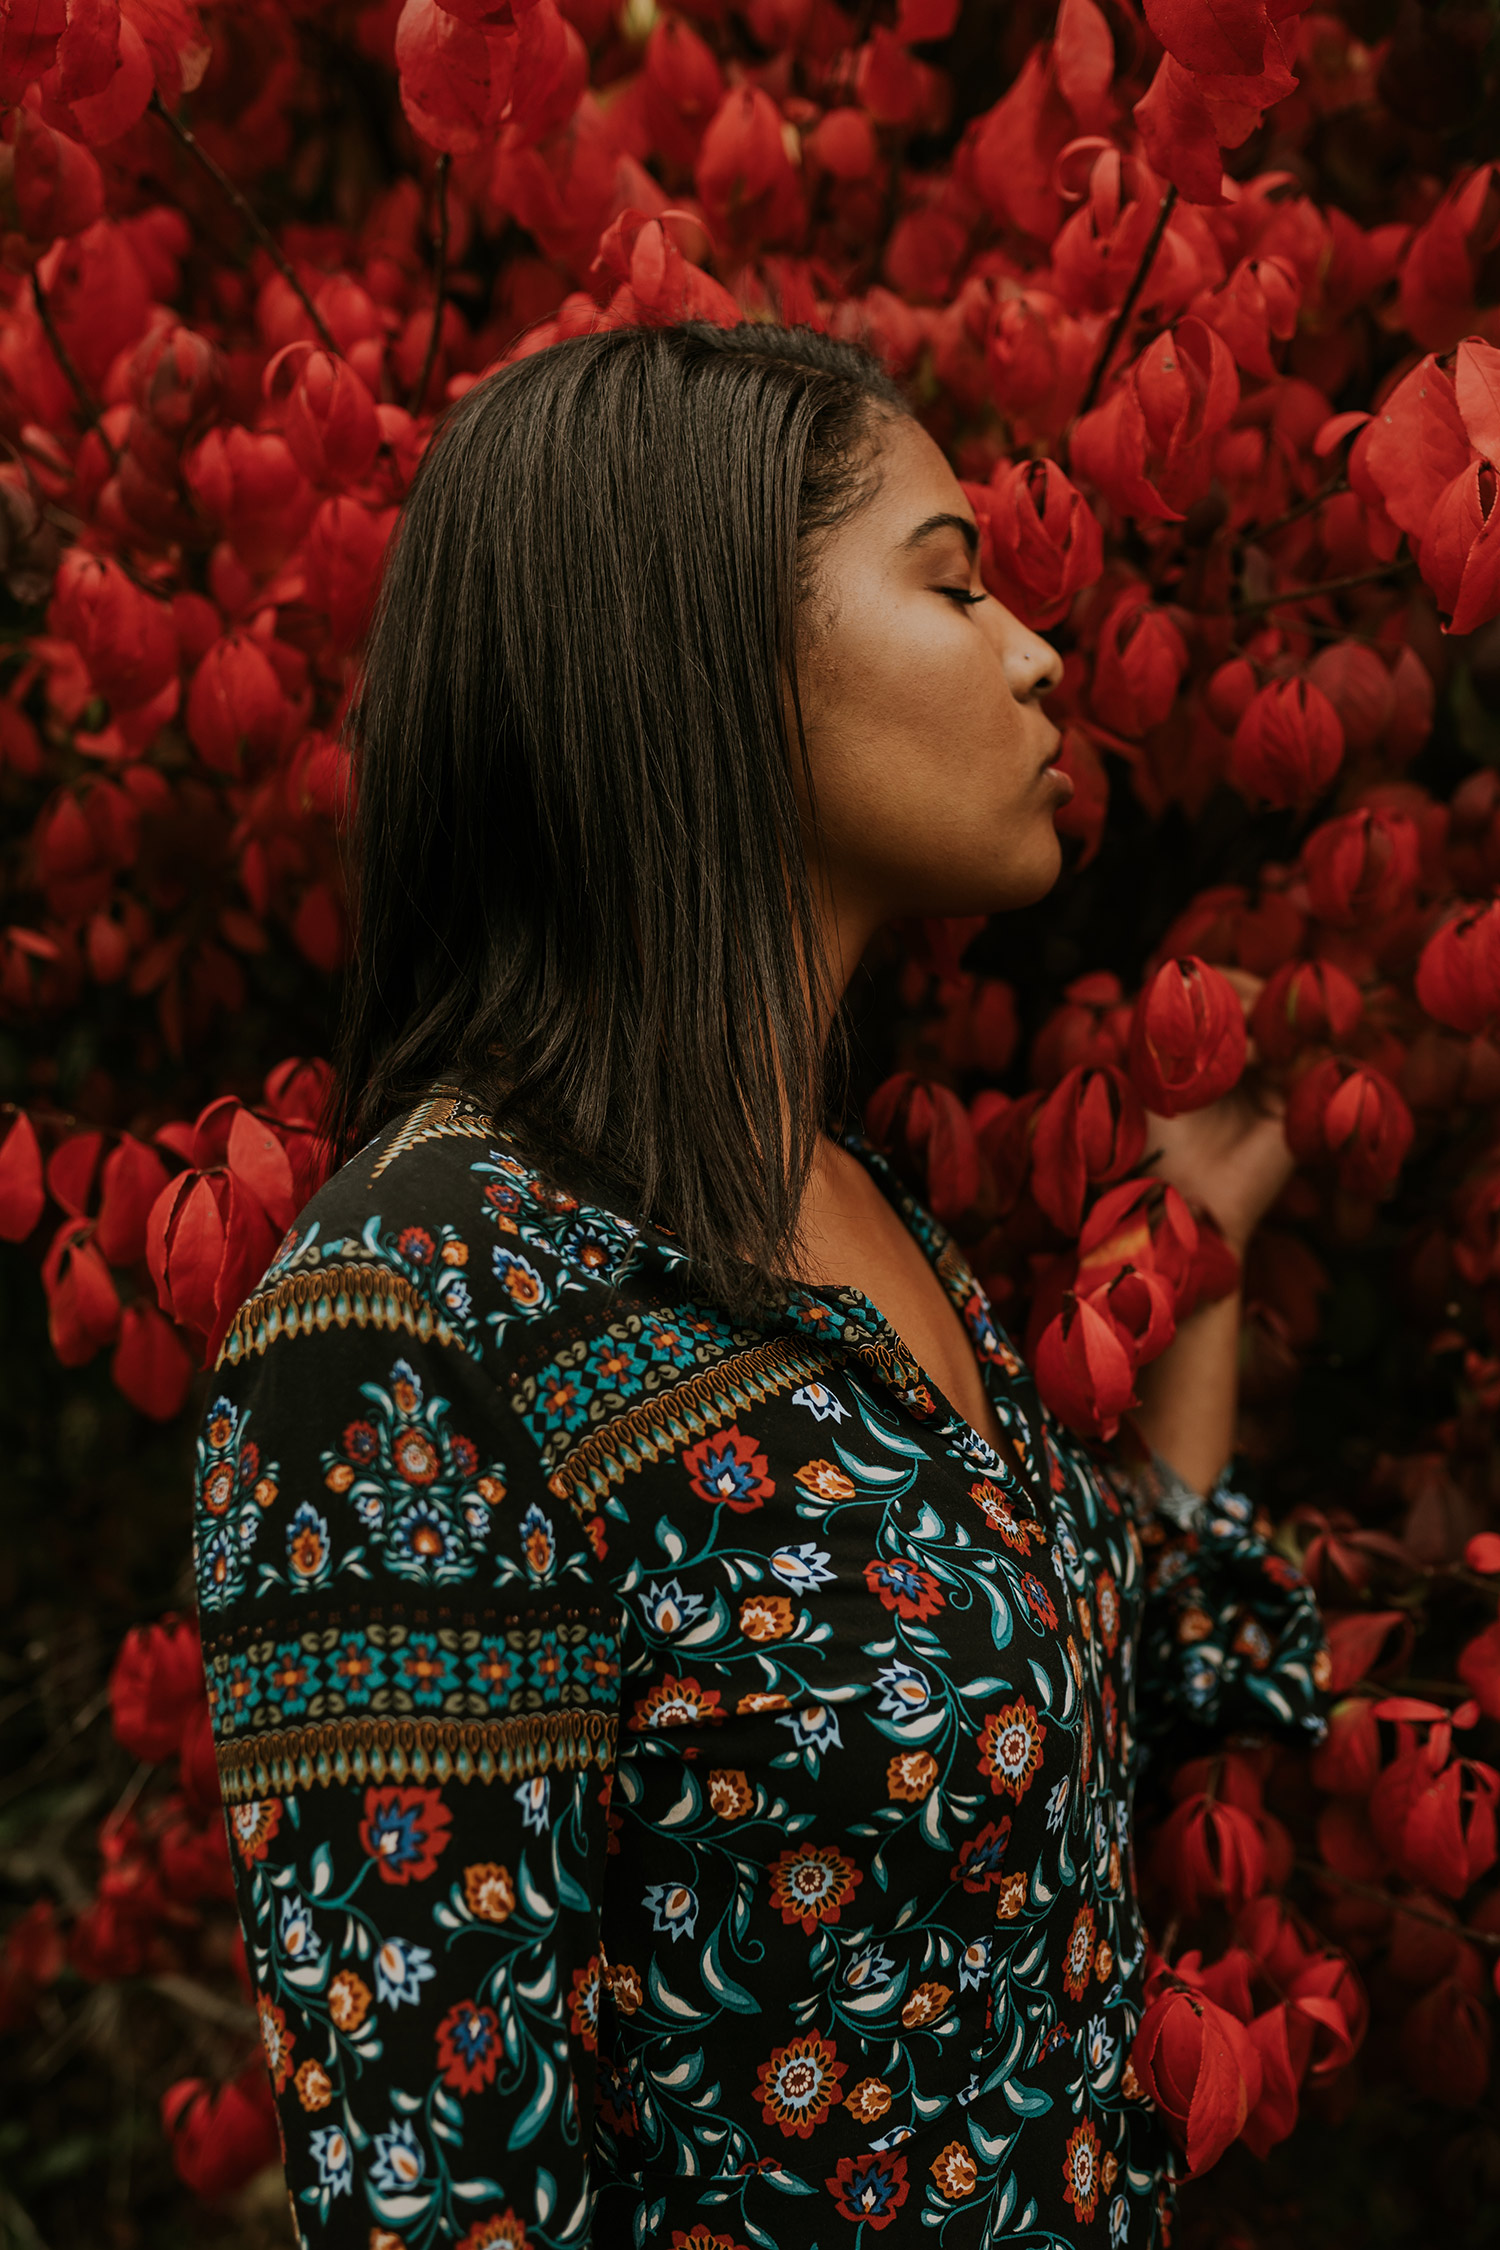 devina-girl-standing-with-red-leaves-senior-roosevelt-high-school-desmoines-iowa-raelyn-ramey-photography-134.jpg